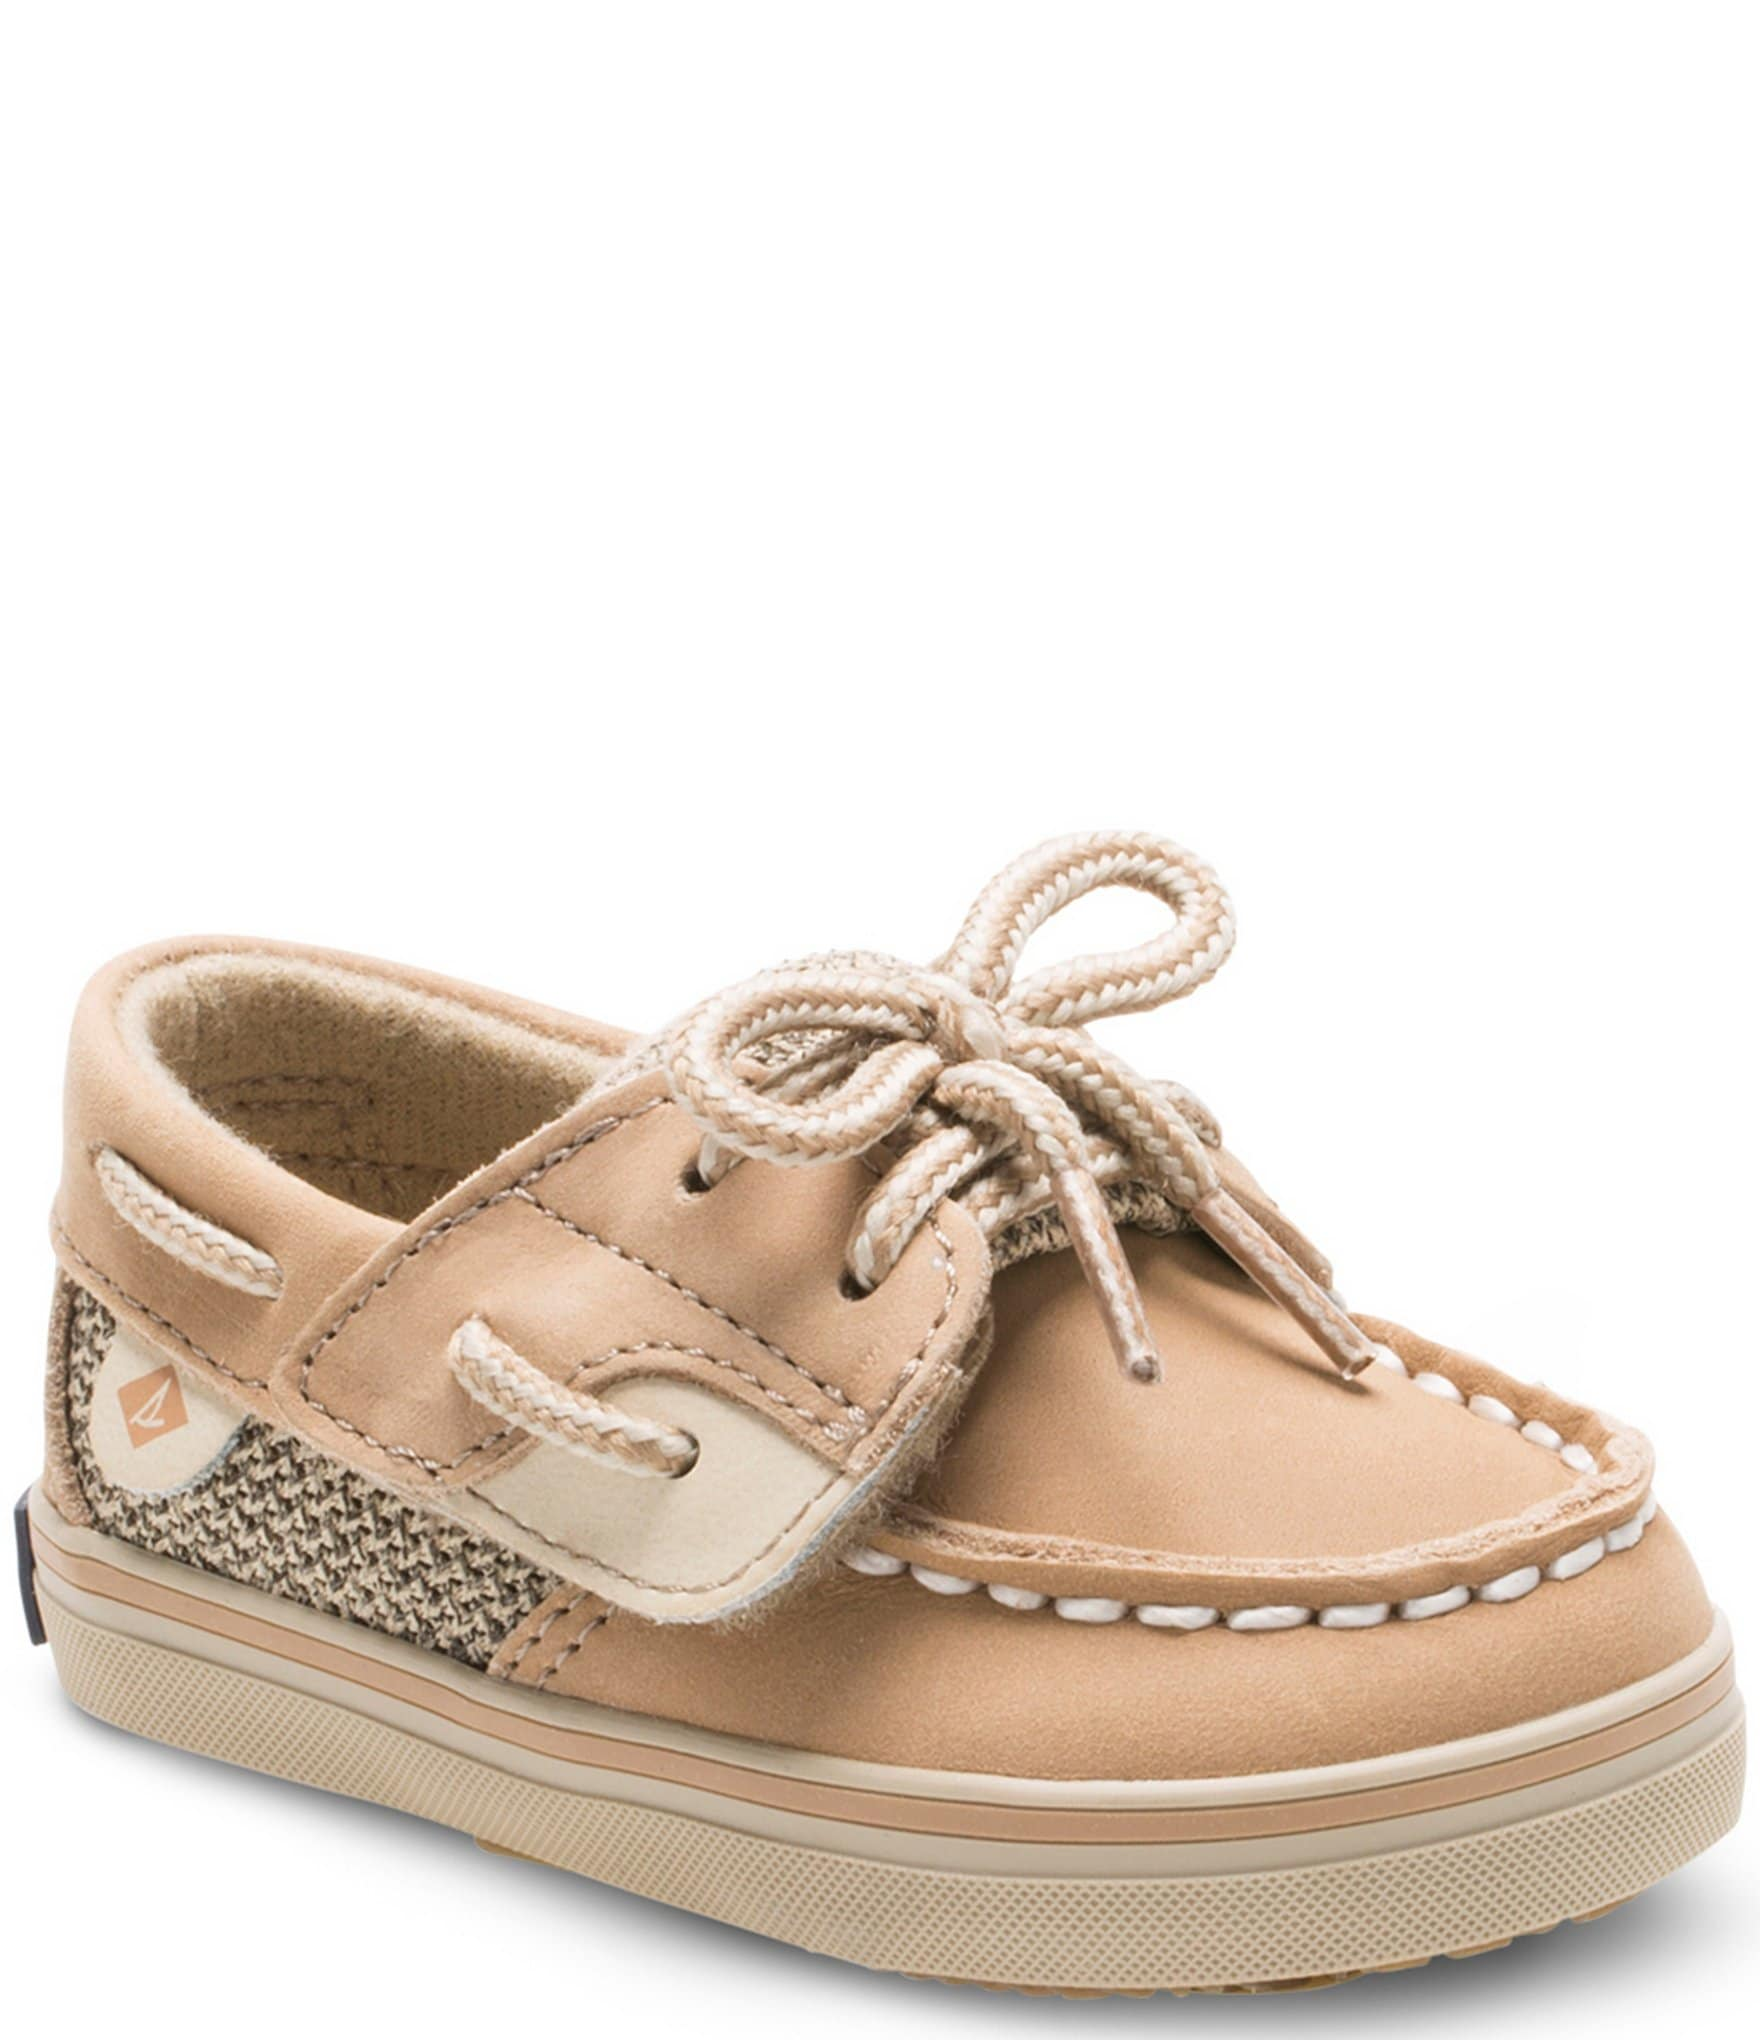 Newborn Shoes Vans Sperry Boys Bluefish Crib Shoes